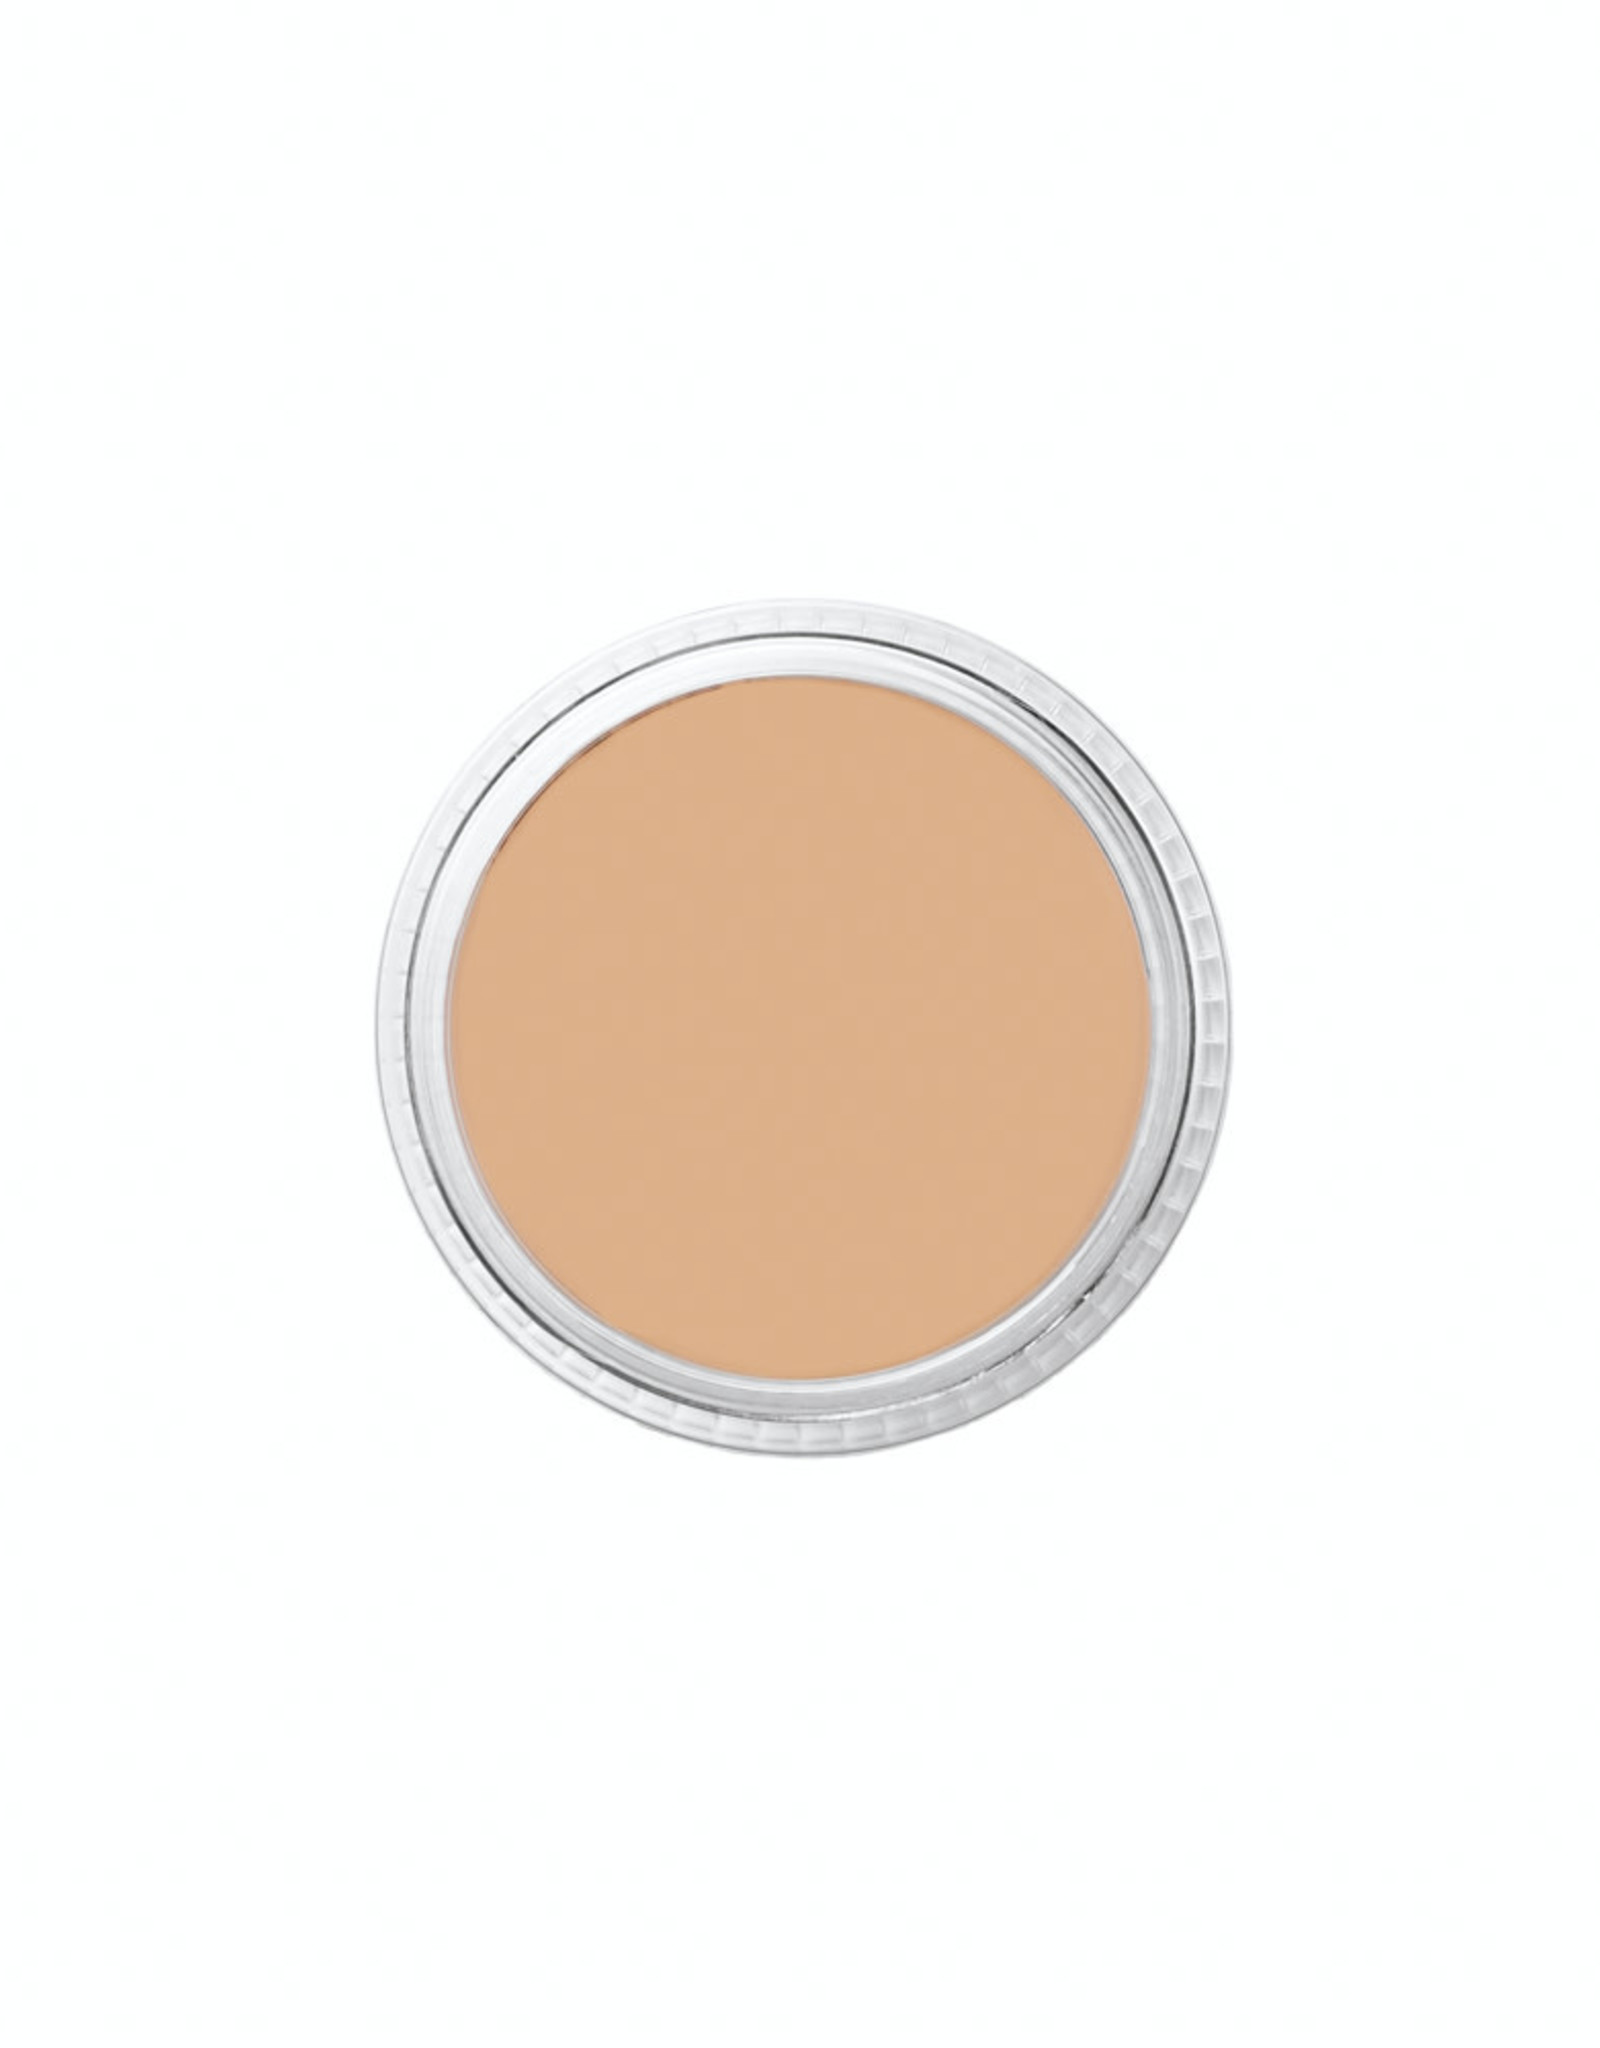 Ben Nye CONCEALER-BLUE NEUTRALIZER, NO.1, .3 OZ